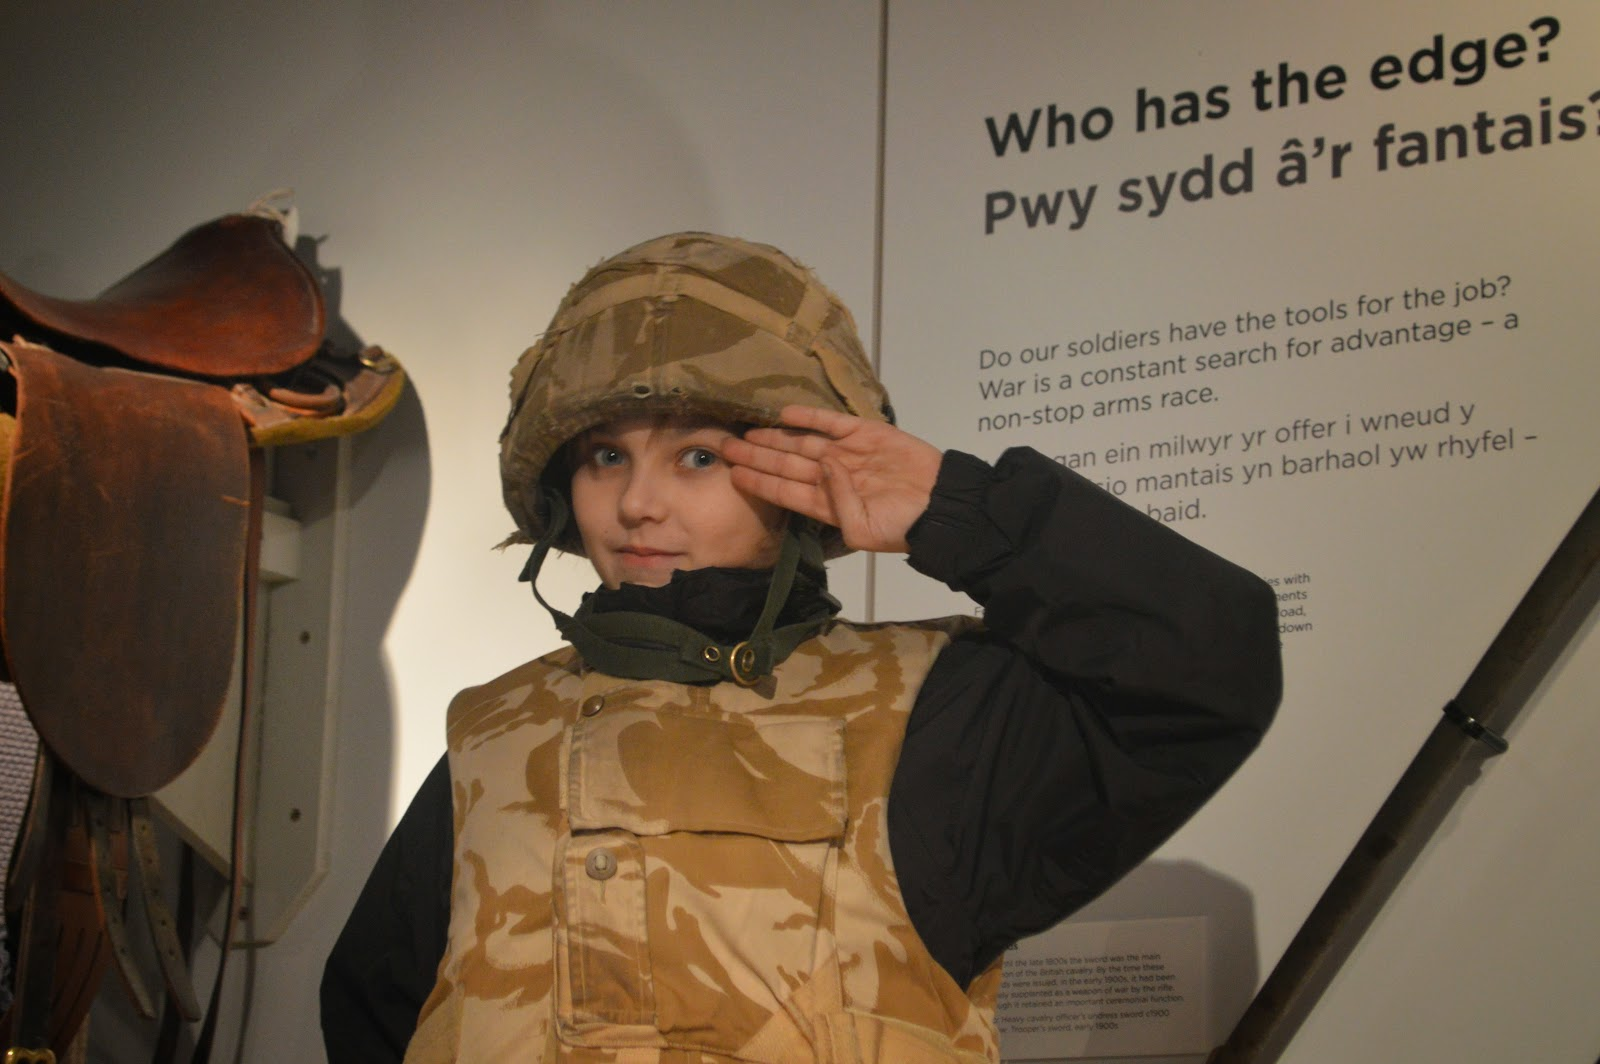 The Firing Line The Story of the Welsh Soldier Dress Up Military Uniform